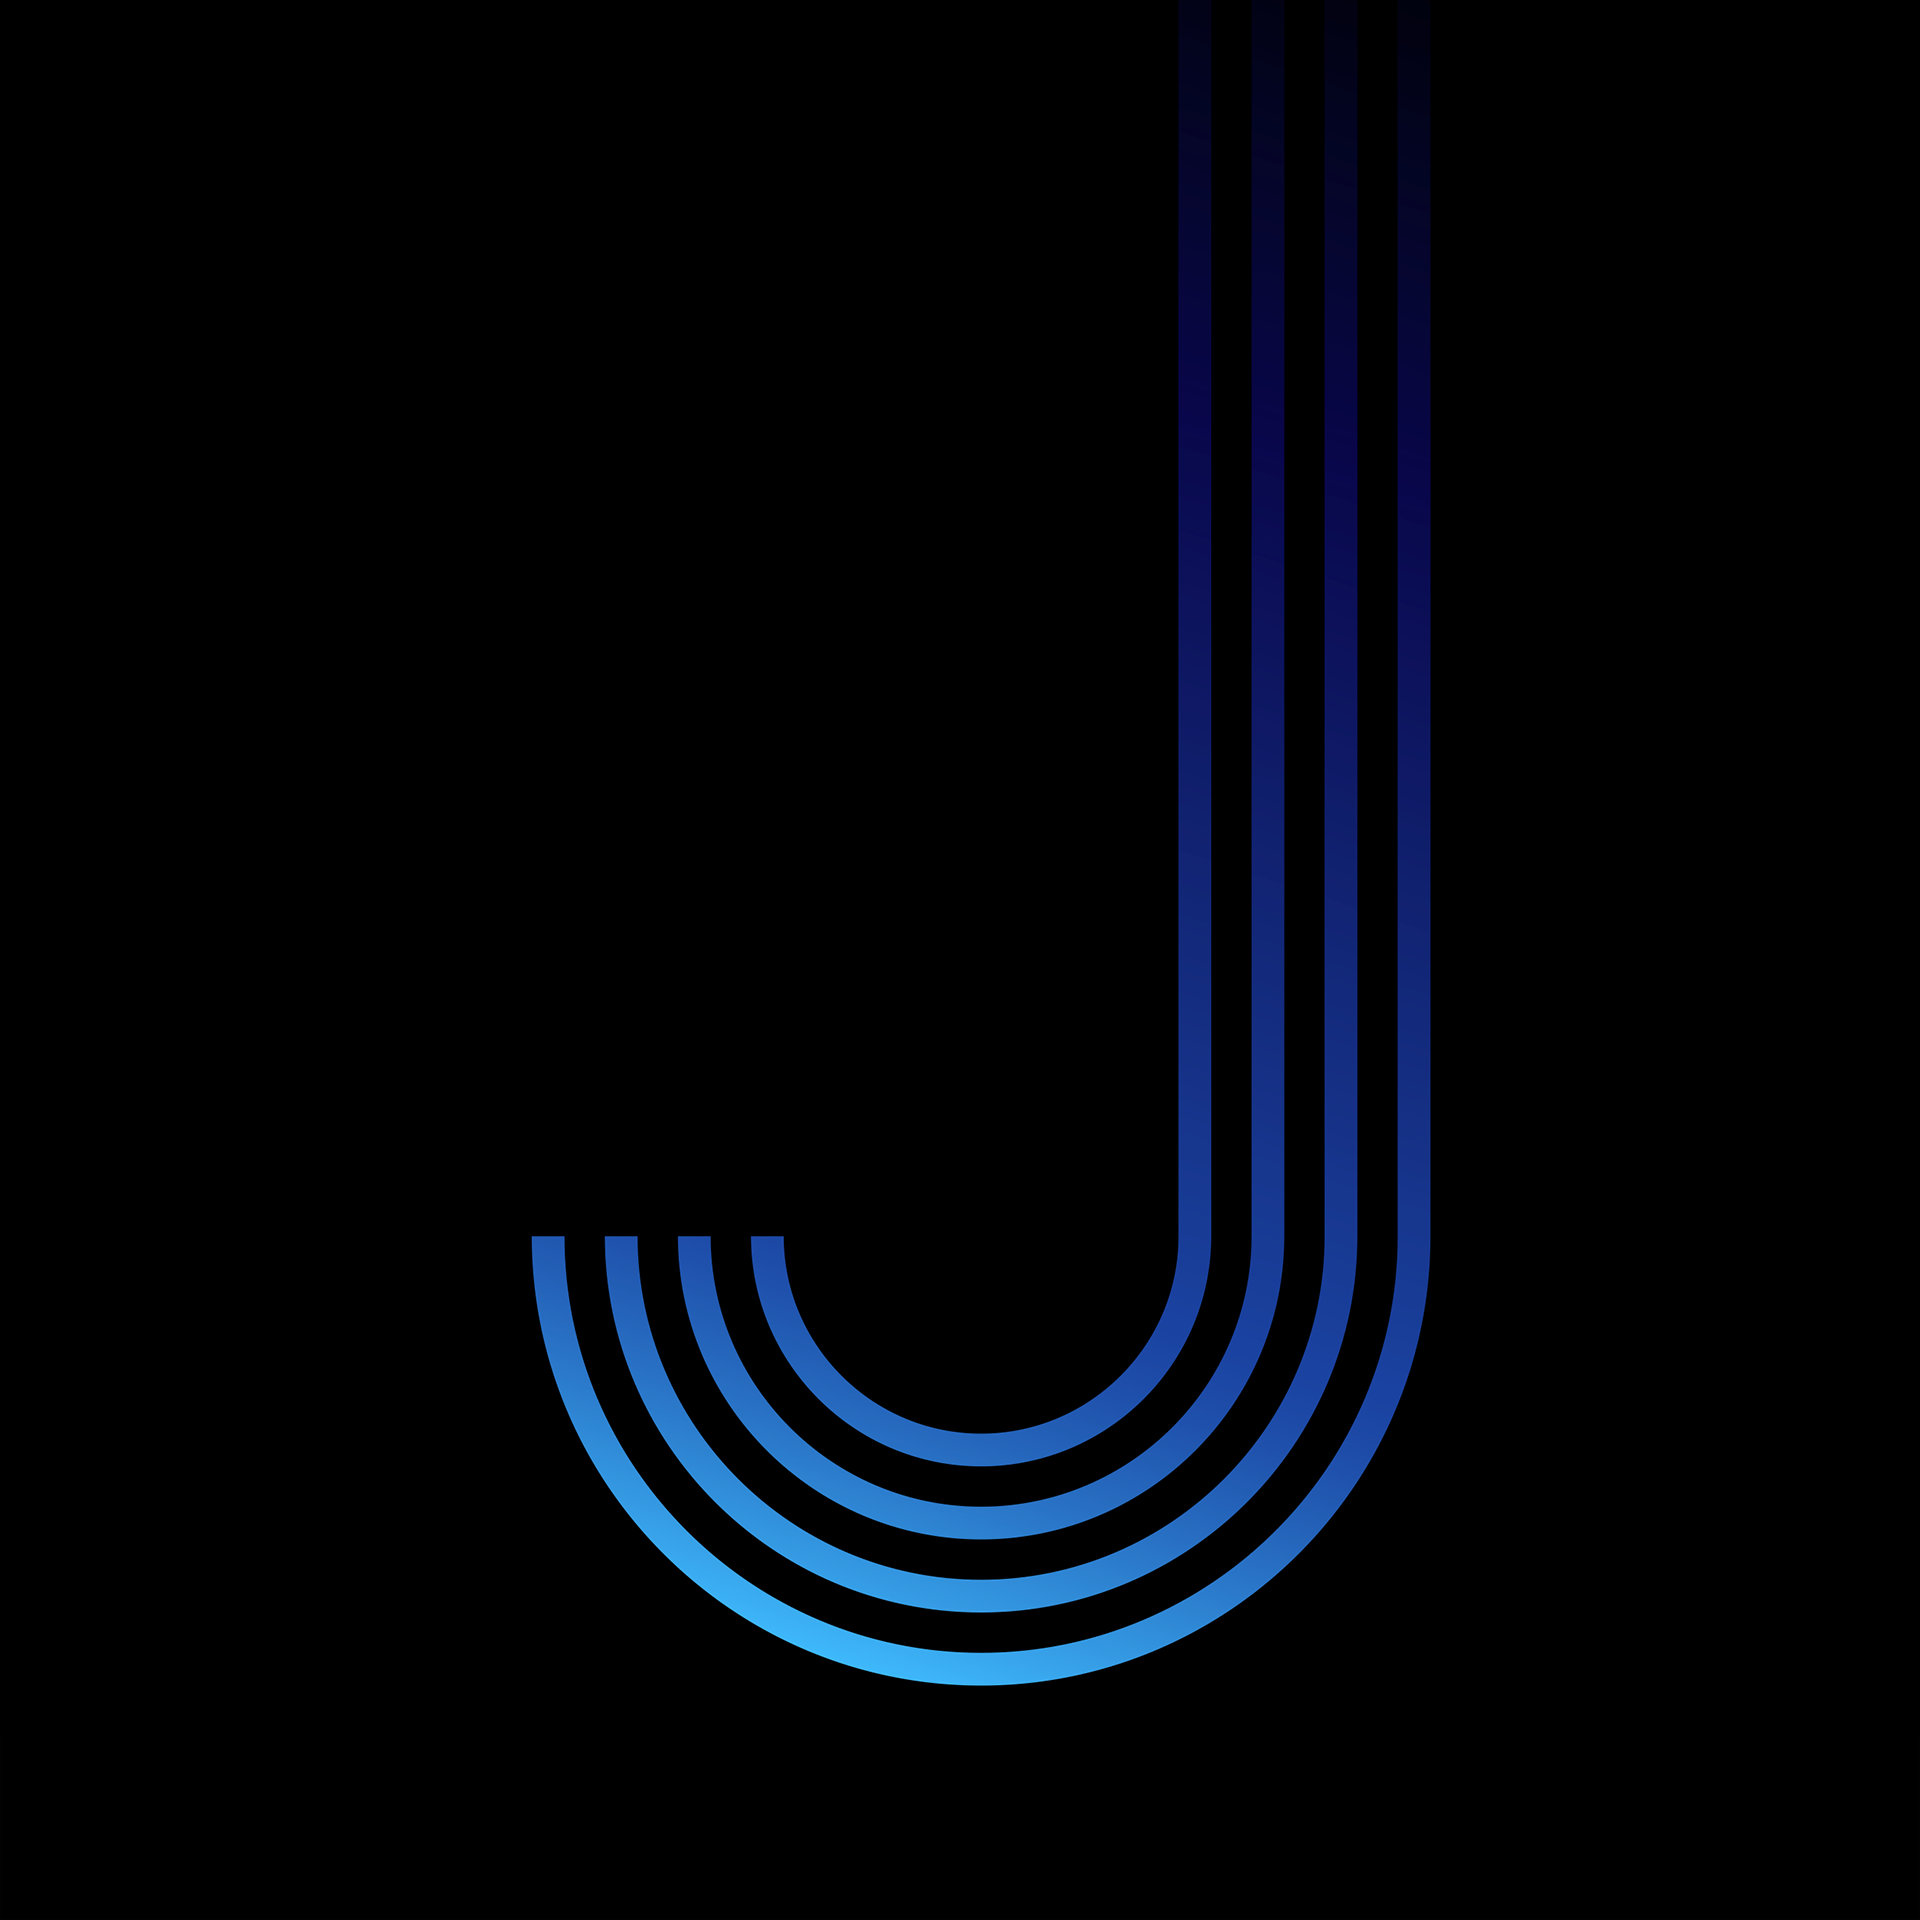 Download Samsung Galaxy J7 Max Wallpapers | DroidViews